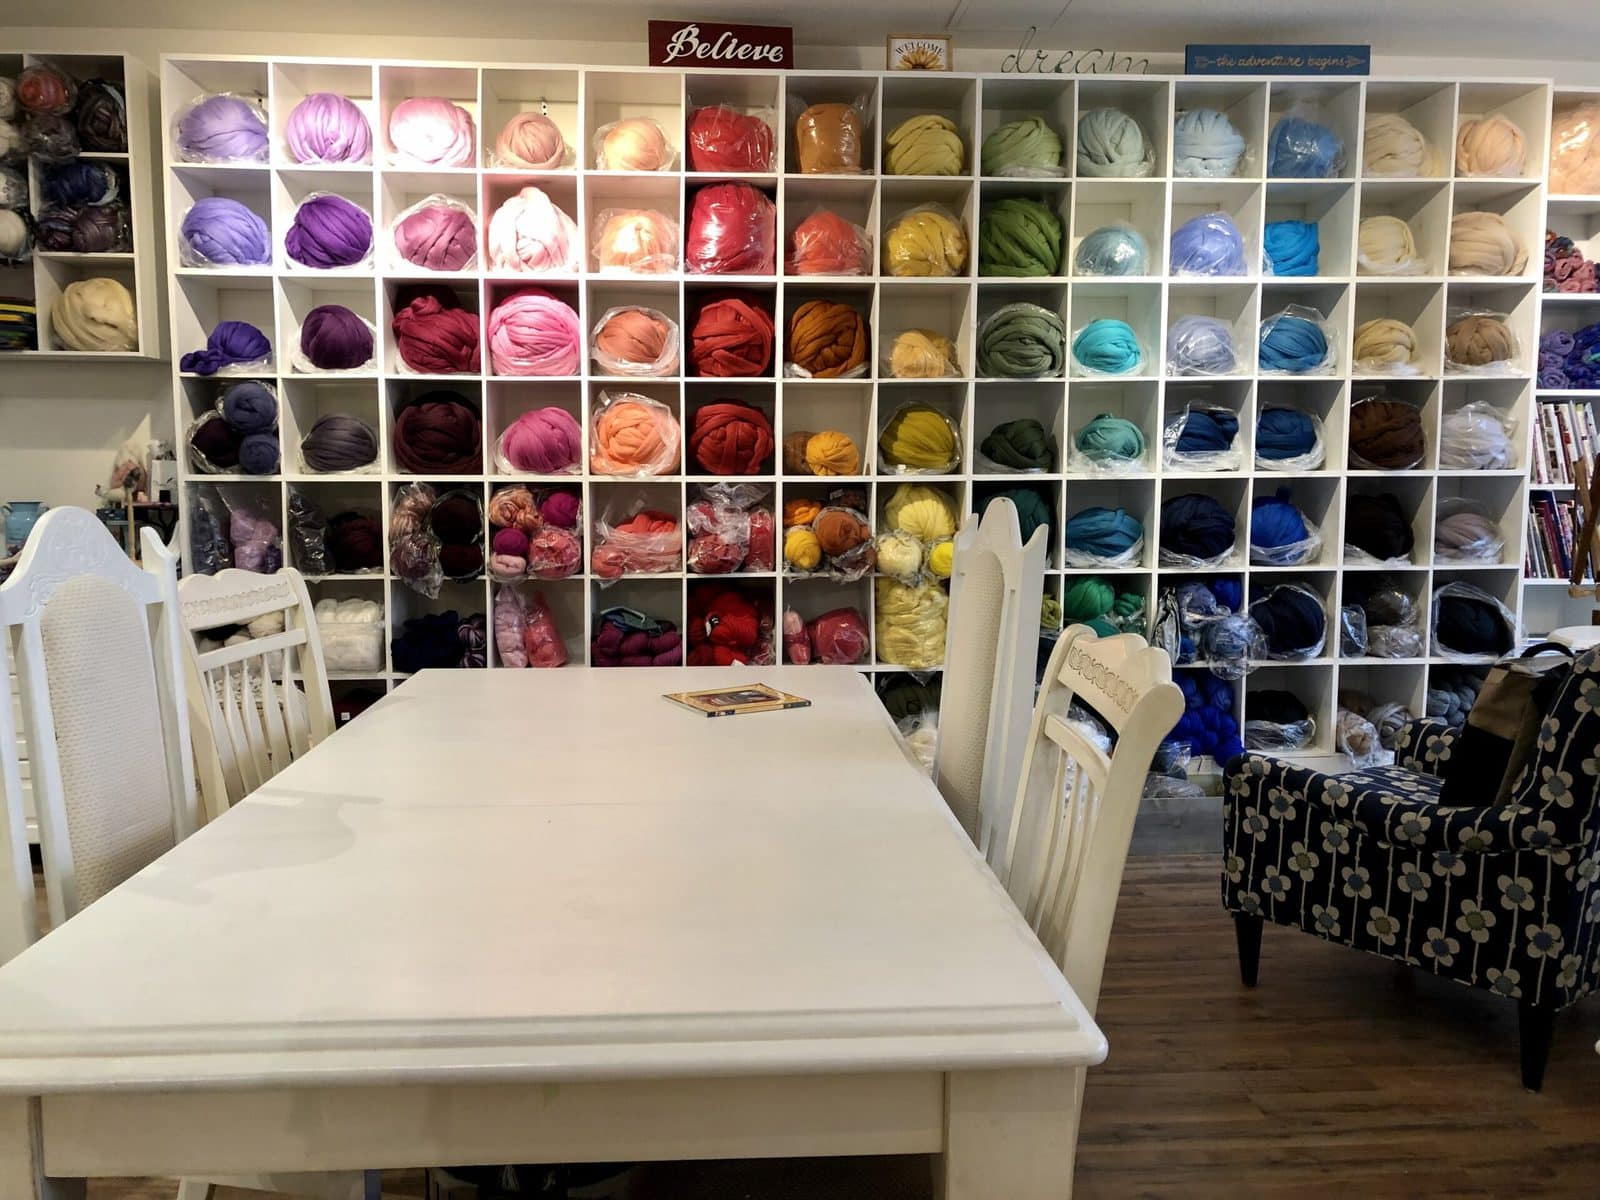 Stitching Together: How Indie Craft Shops Have Adapted in the COVID-19 Pandemic